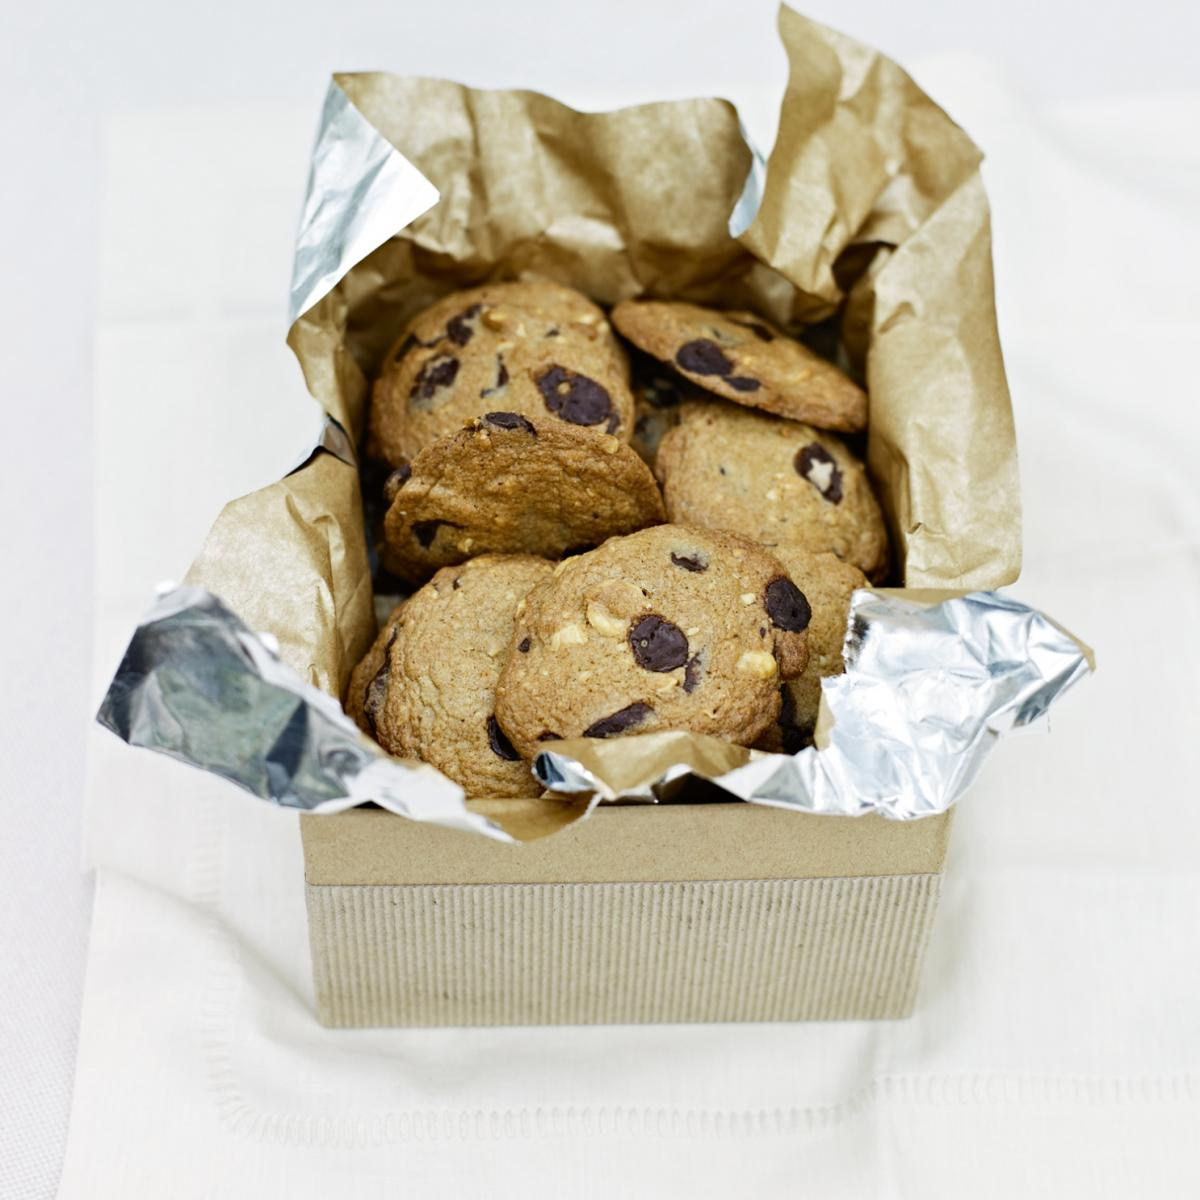 A picture of Delia's Chocolate Chip Cookies recipe